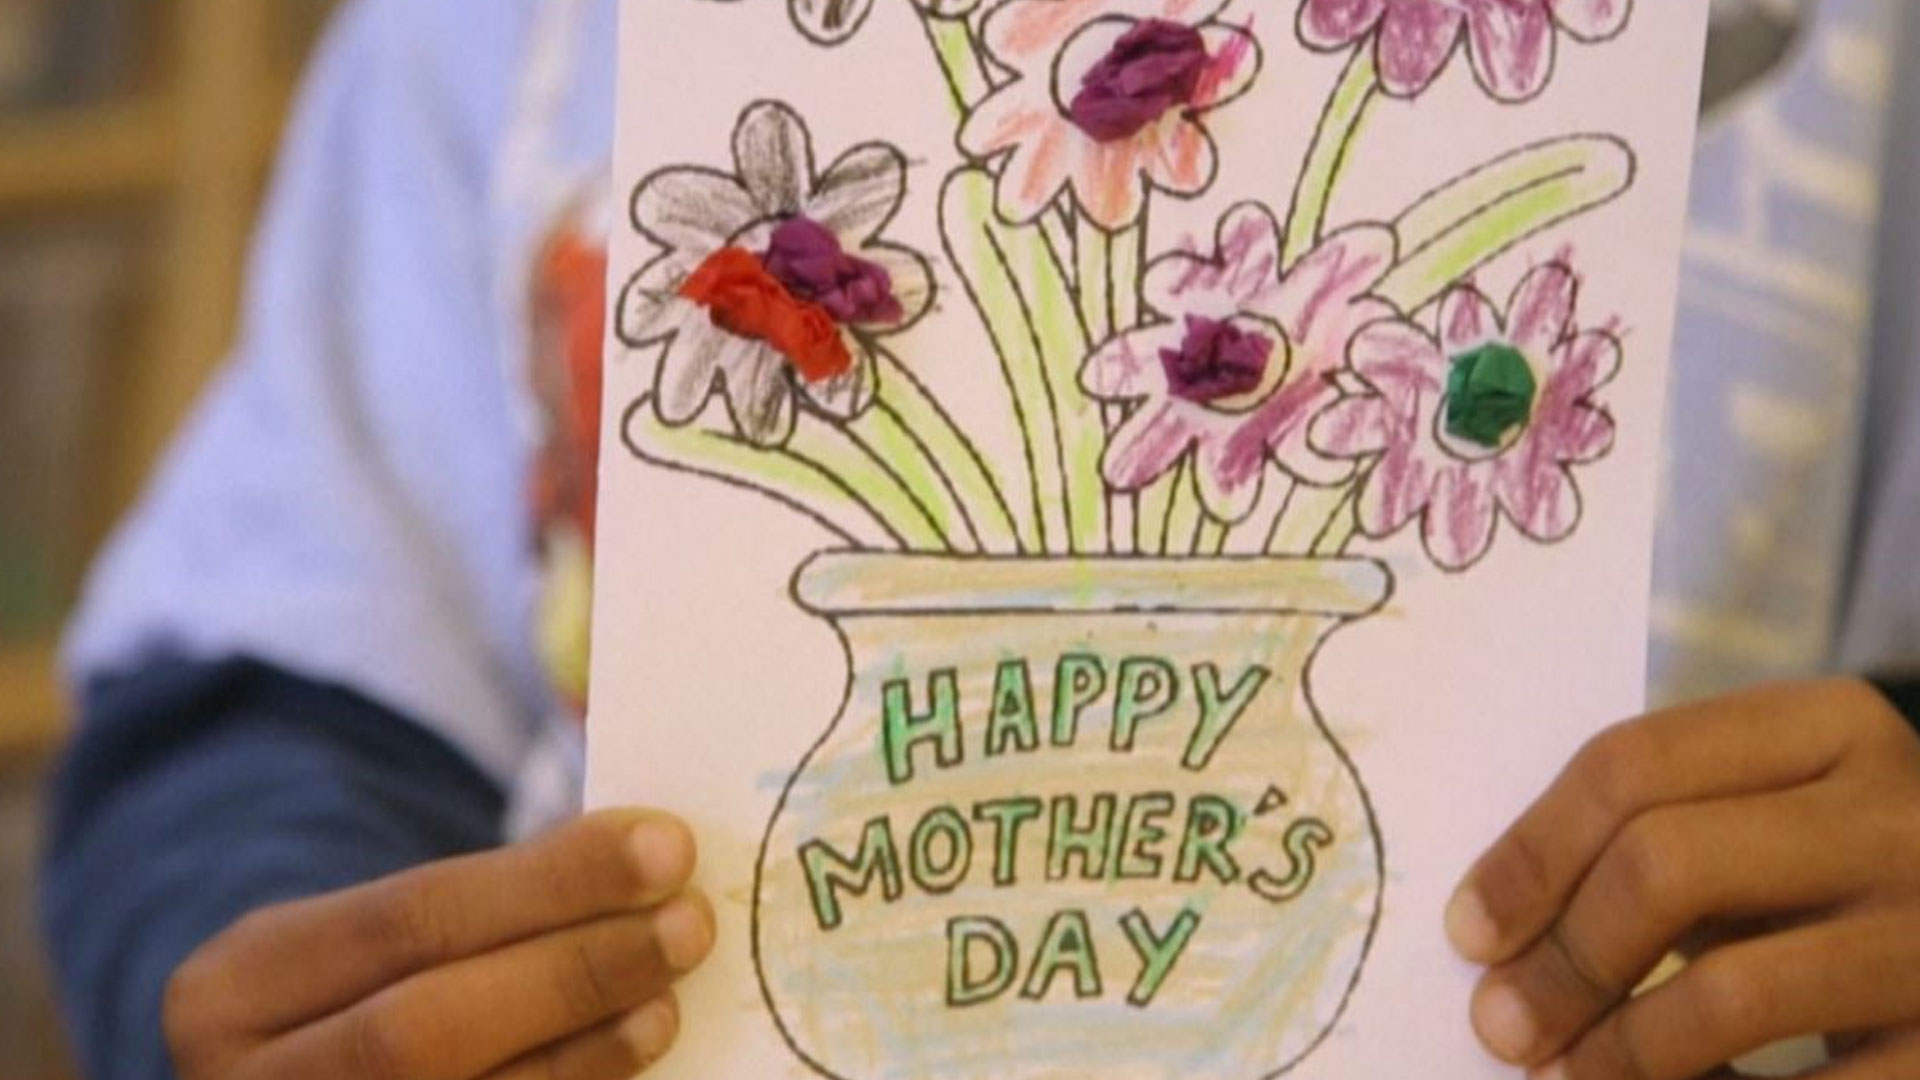 MOTHER'S-DAY-WEB-GENERIC_1525833110343.jpg